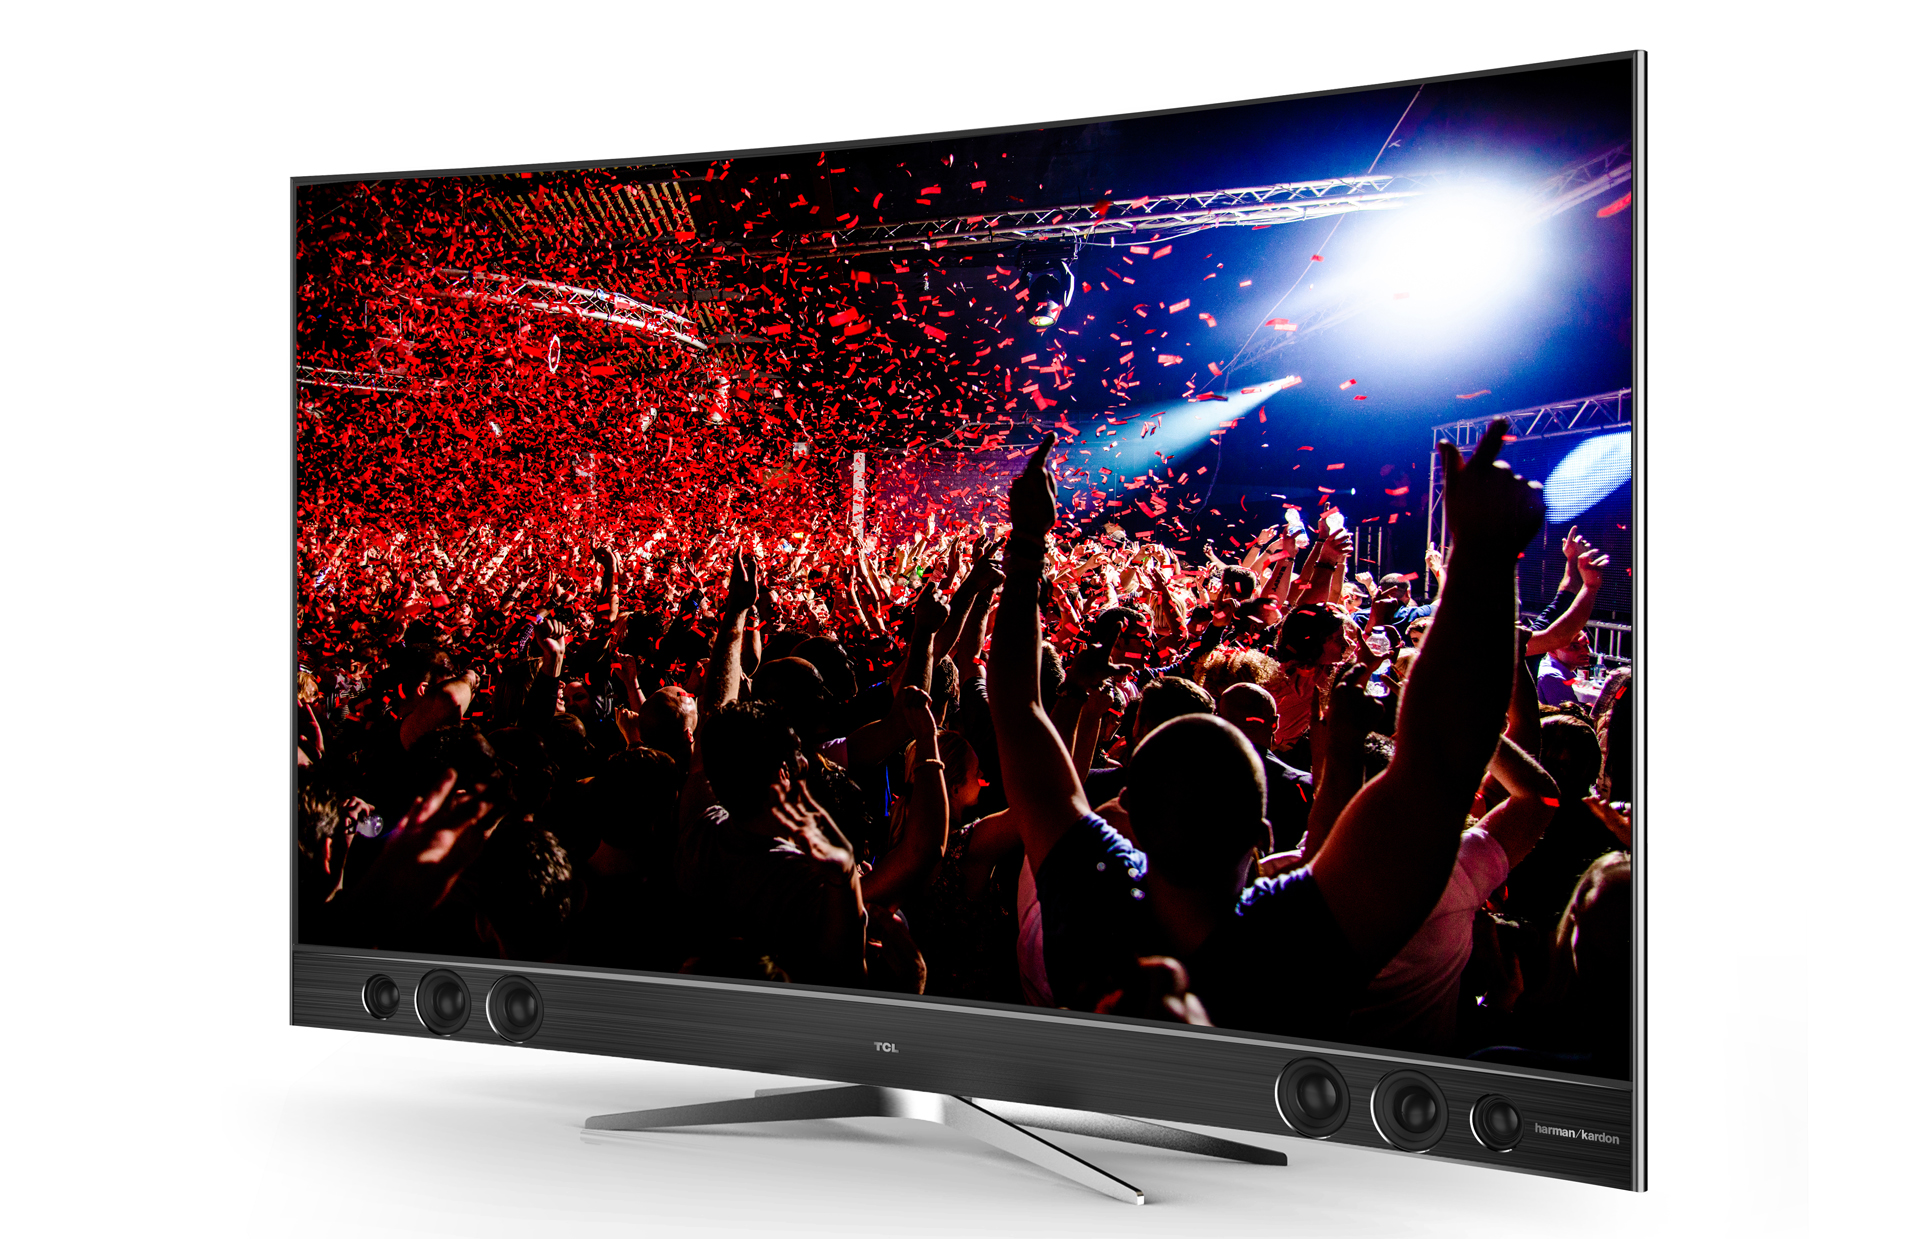 Dolby Vision imaging technology comes to TCL's X1 4K UHD TV